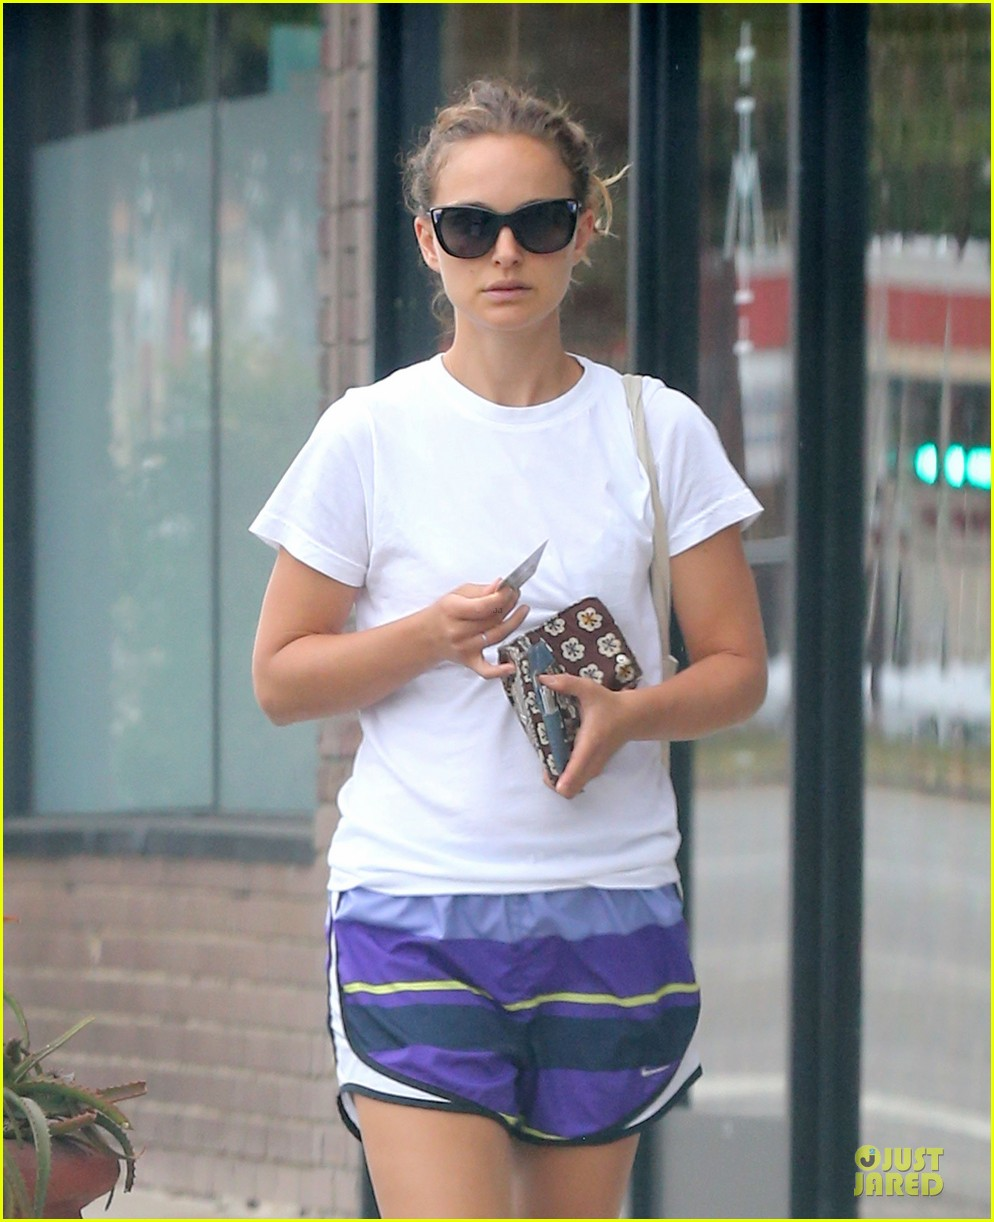 Natalie Portman Pre Natal Pilates Body | Male Models Picture - photo#31